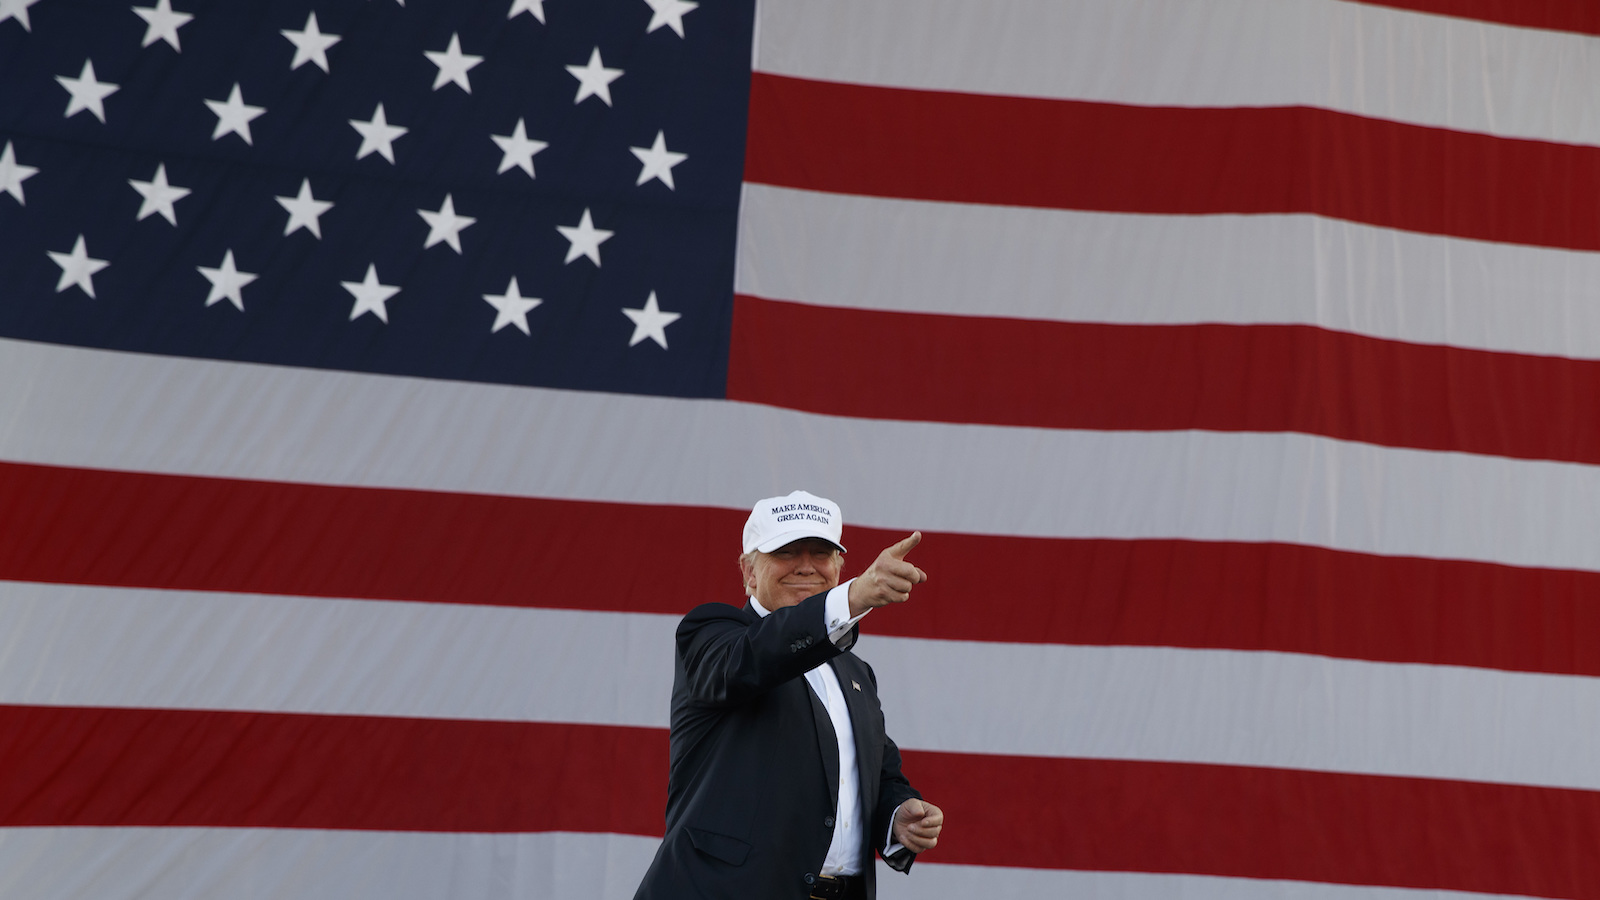 Republican presidential candidate Donald Trump arrives to speak at a campaign rally, Wednesday, Nov. 2, 2016, in Miami. (AP Photo/ Evan Vucci)